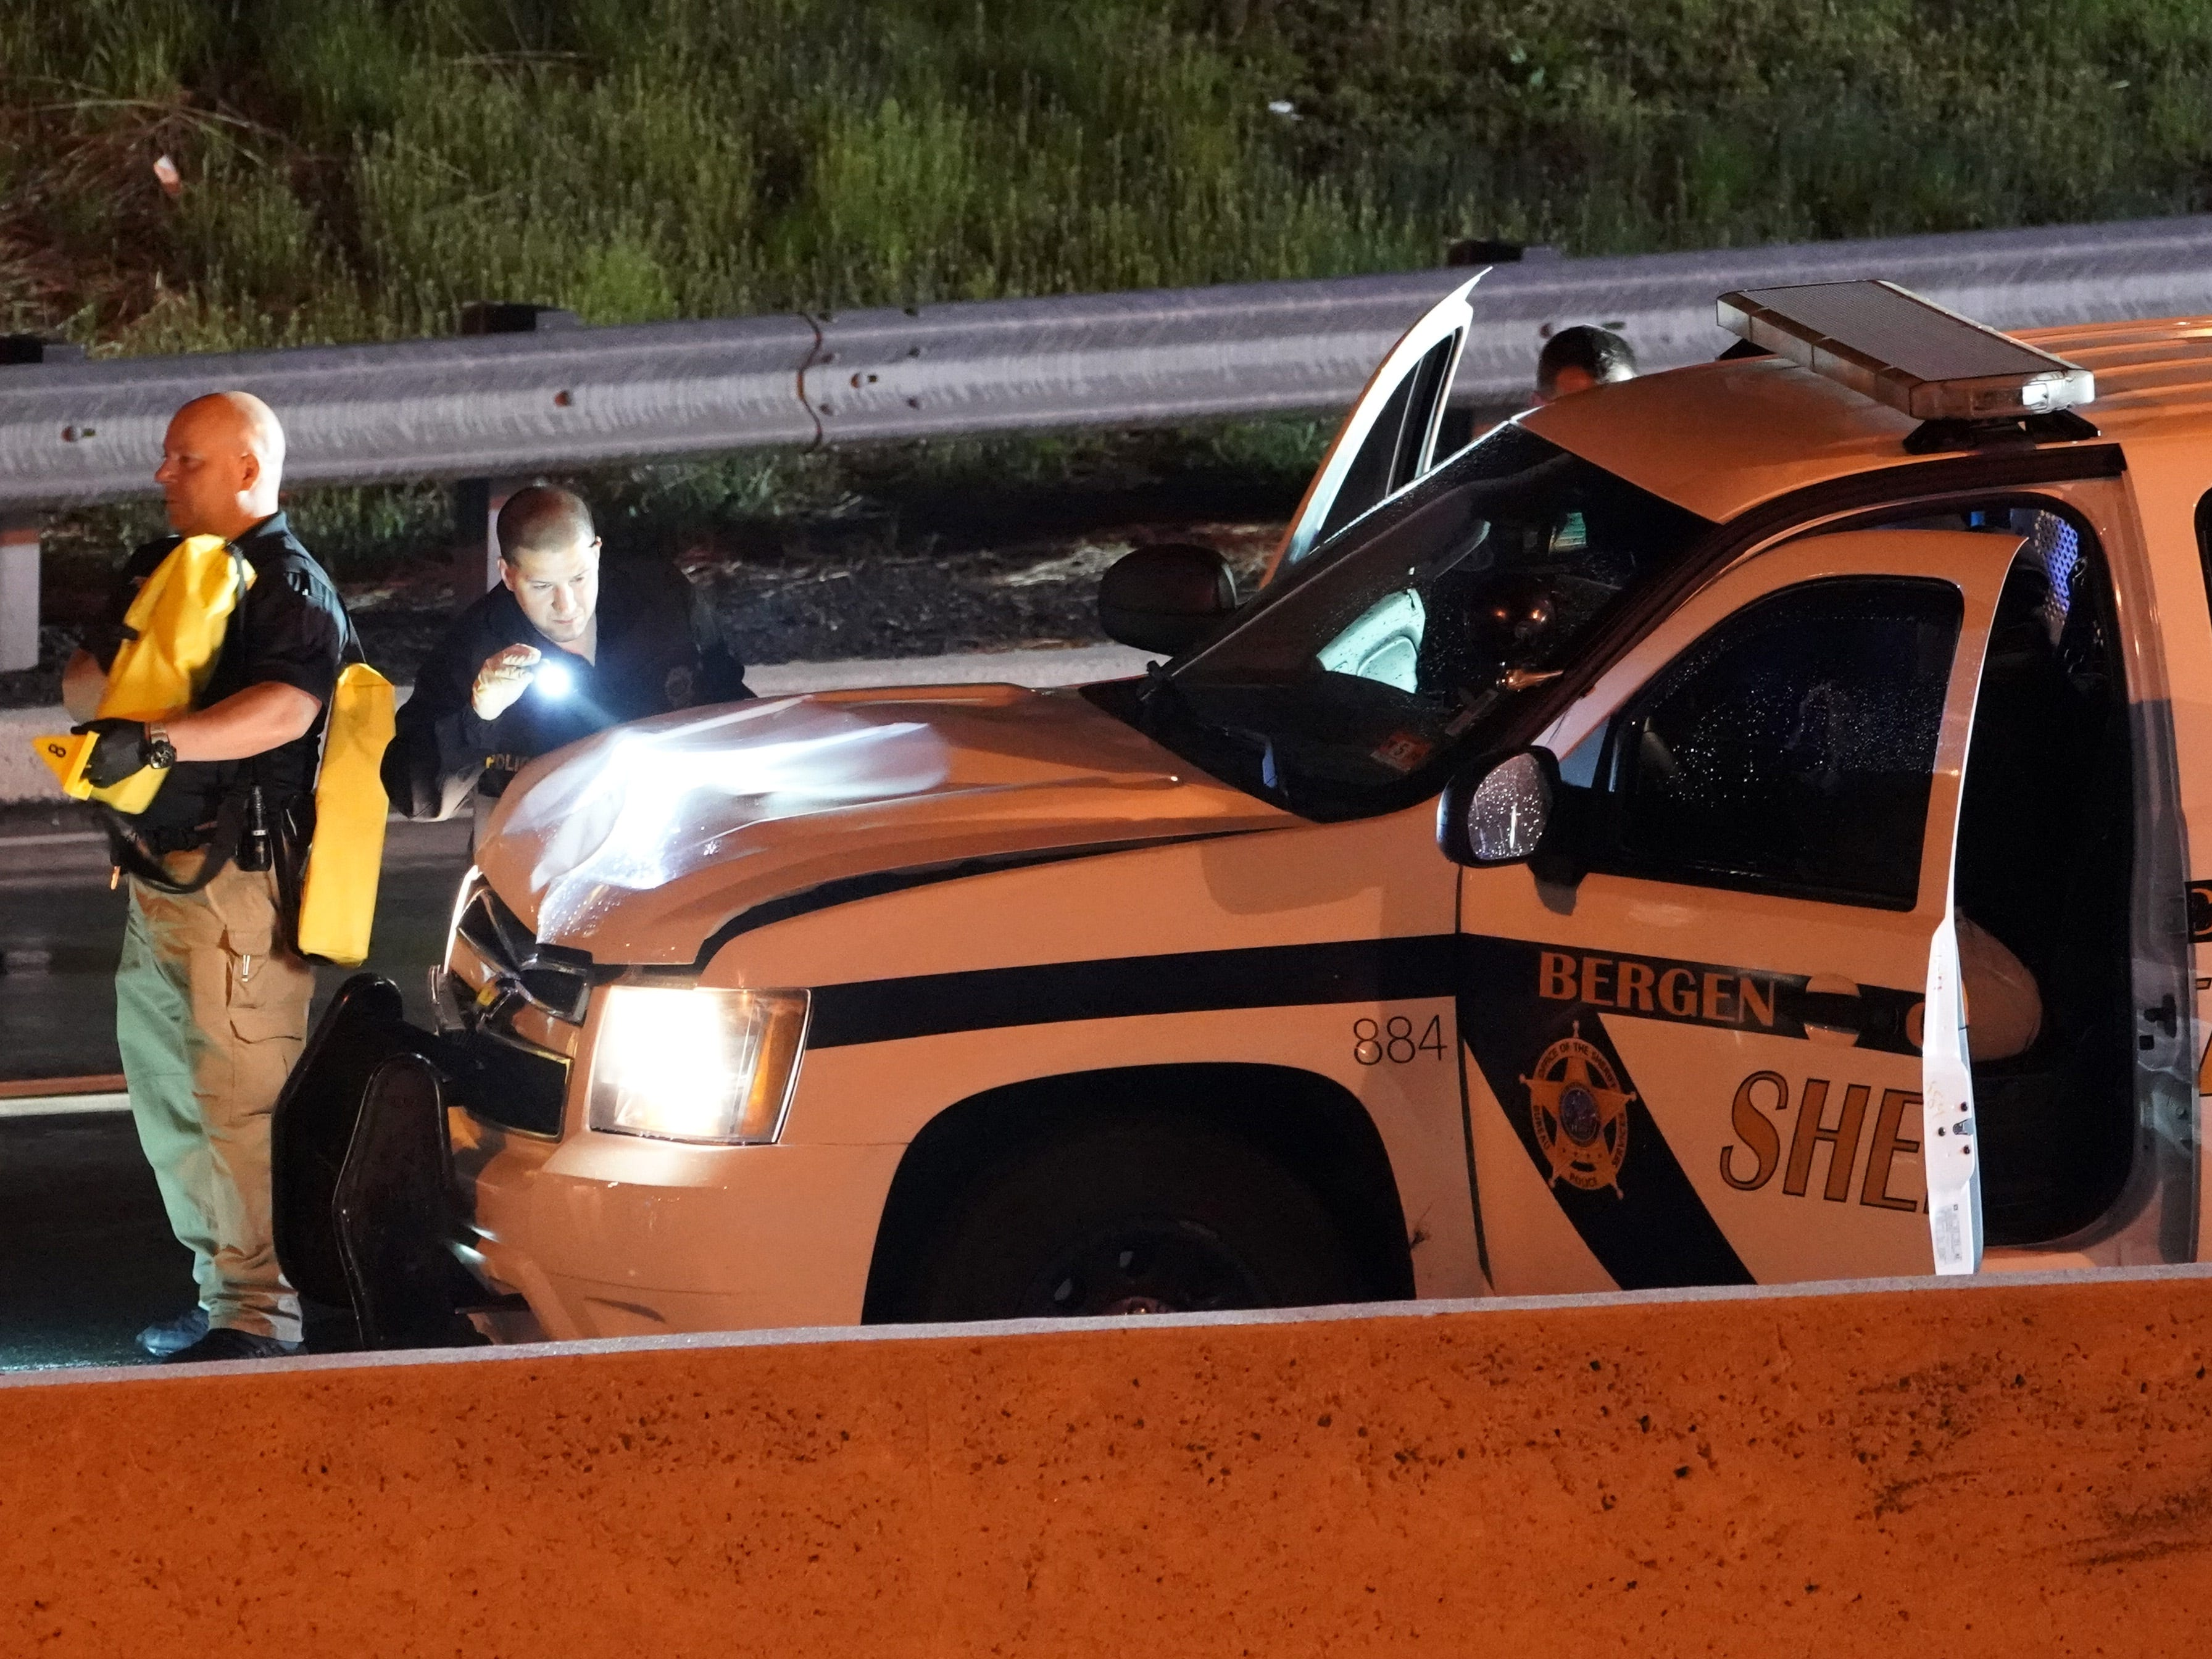 Police at the scene where a Bergen County Sheriff's Office vehicle fatally struck a juvenile pedestrian along Route 208 in Fair Lawn, NJ around 9 p.m. on April 14, 2019.